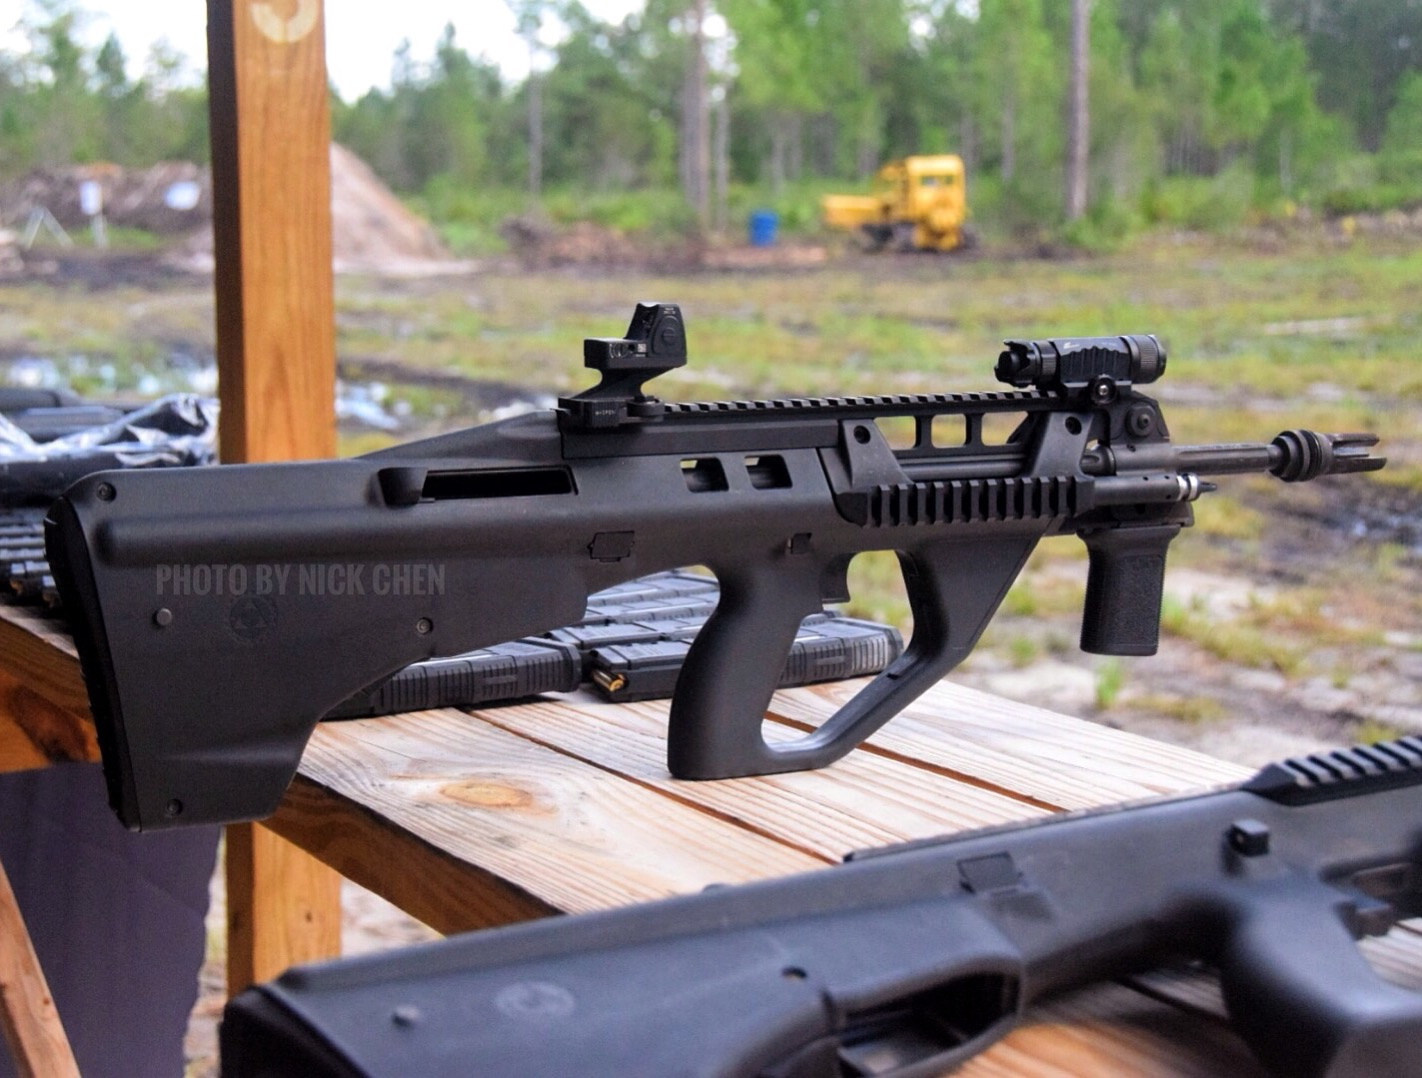 Big 3 East] Lithgow F90 ATRAX Bullpup Select Fire -The